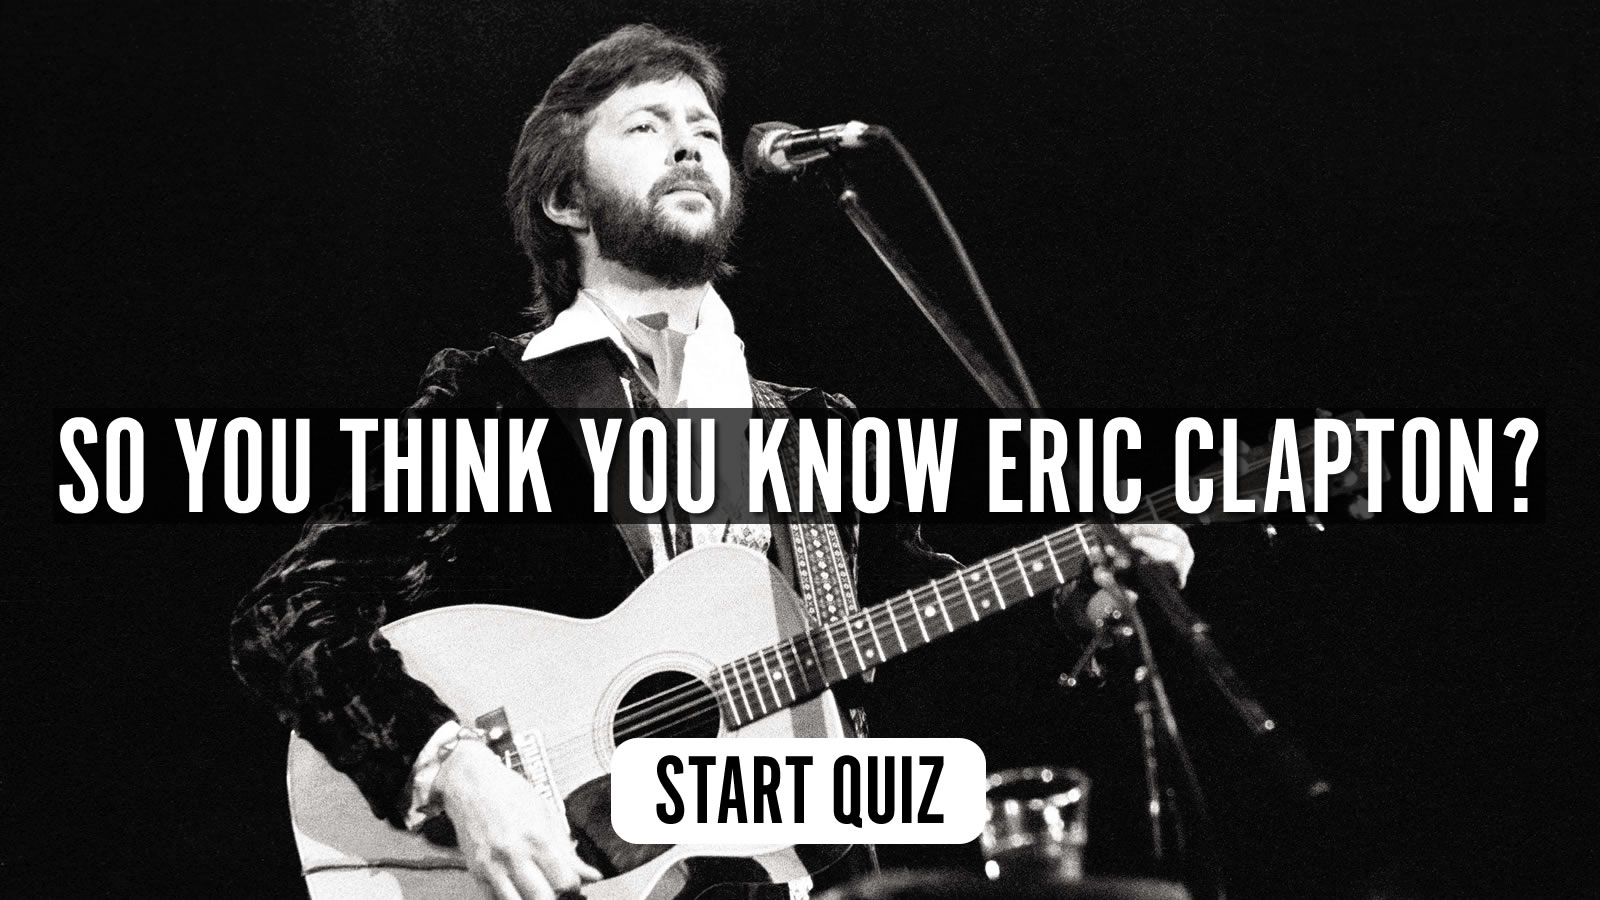 Uquiz So You Think You Know Eric Clapton